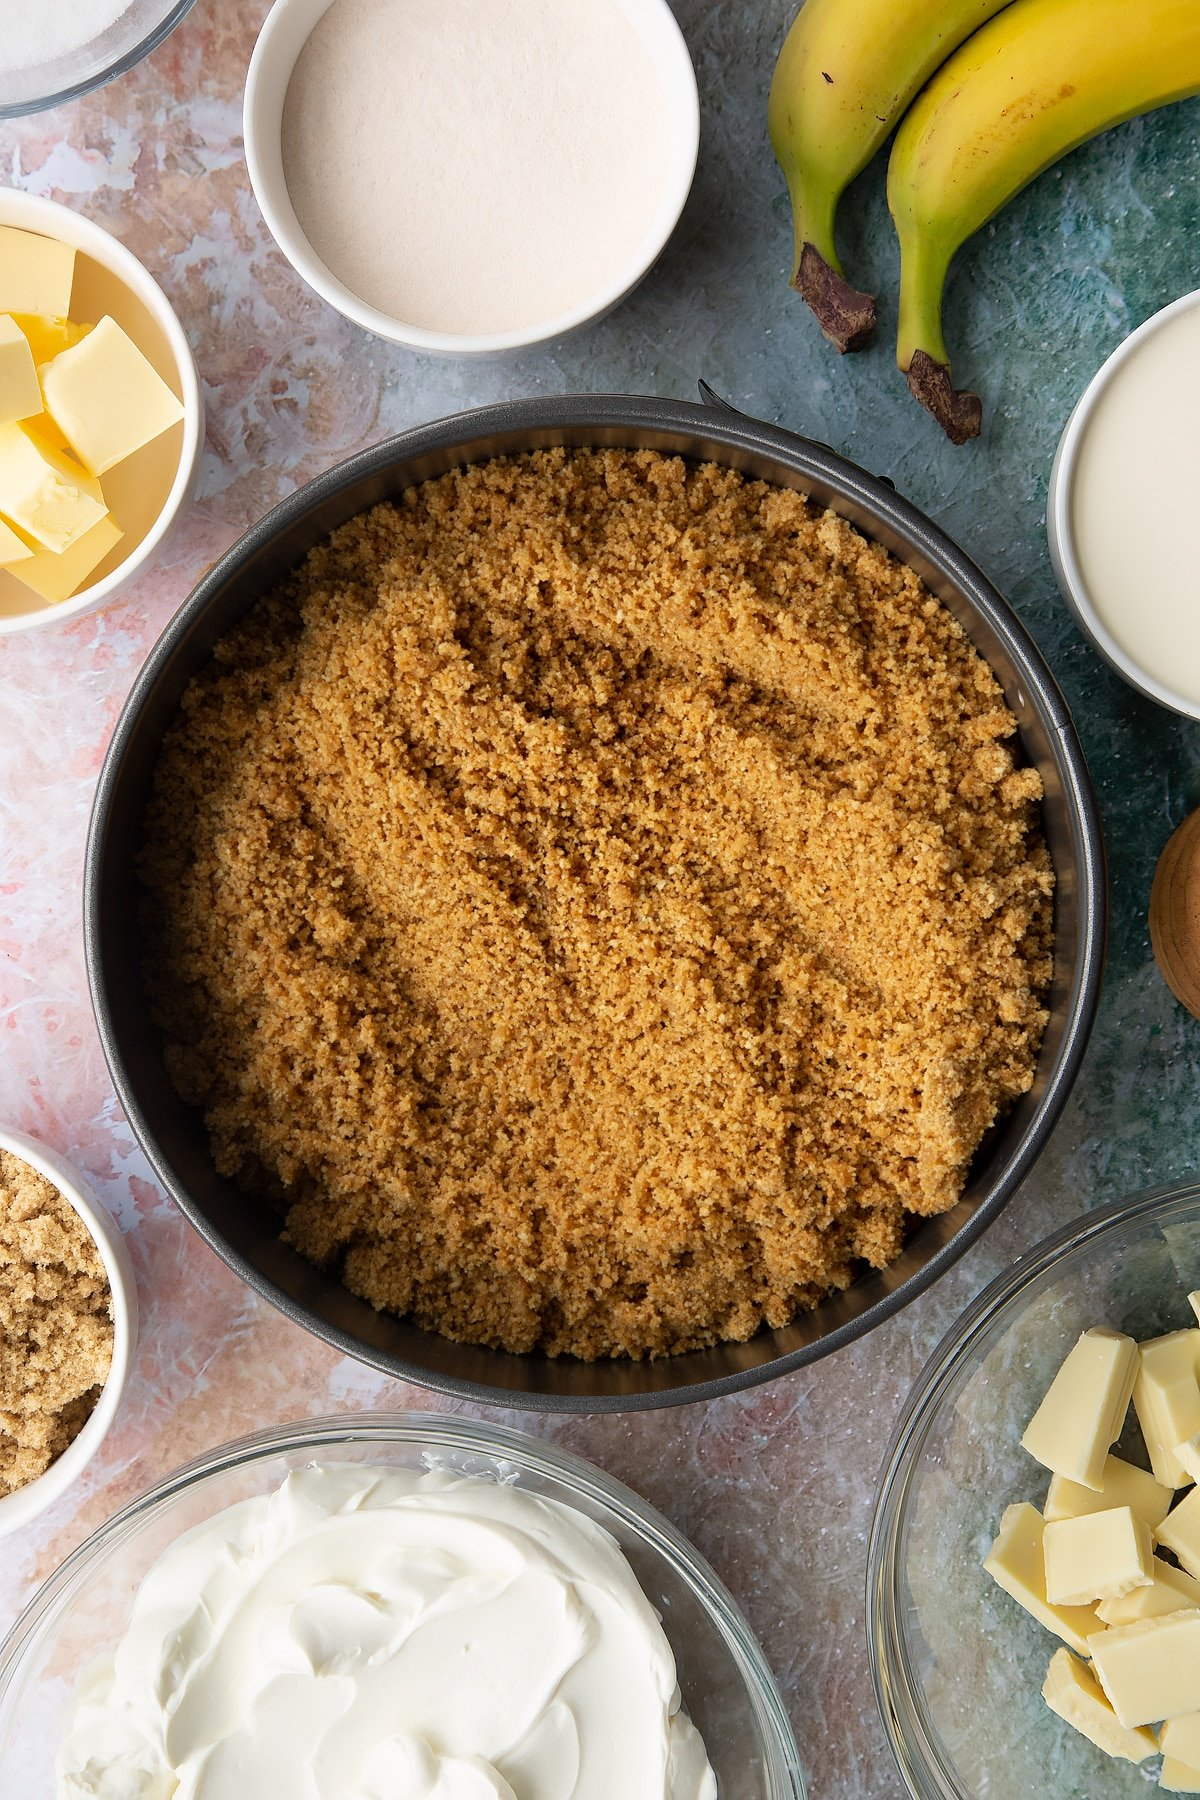 Crumbled biscuits and melted butter mixed together and tipped into a large cake tin. Ingredients to make banoffee pie cheesecake surround the tin.